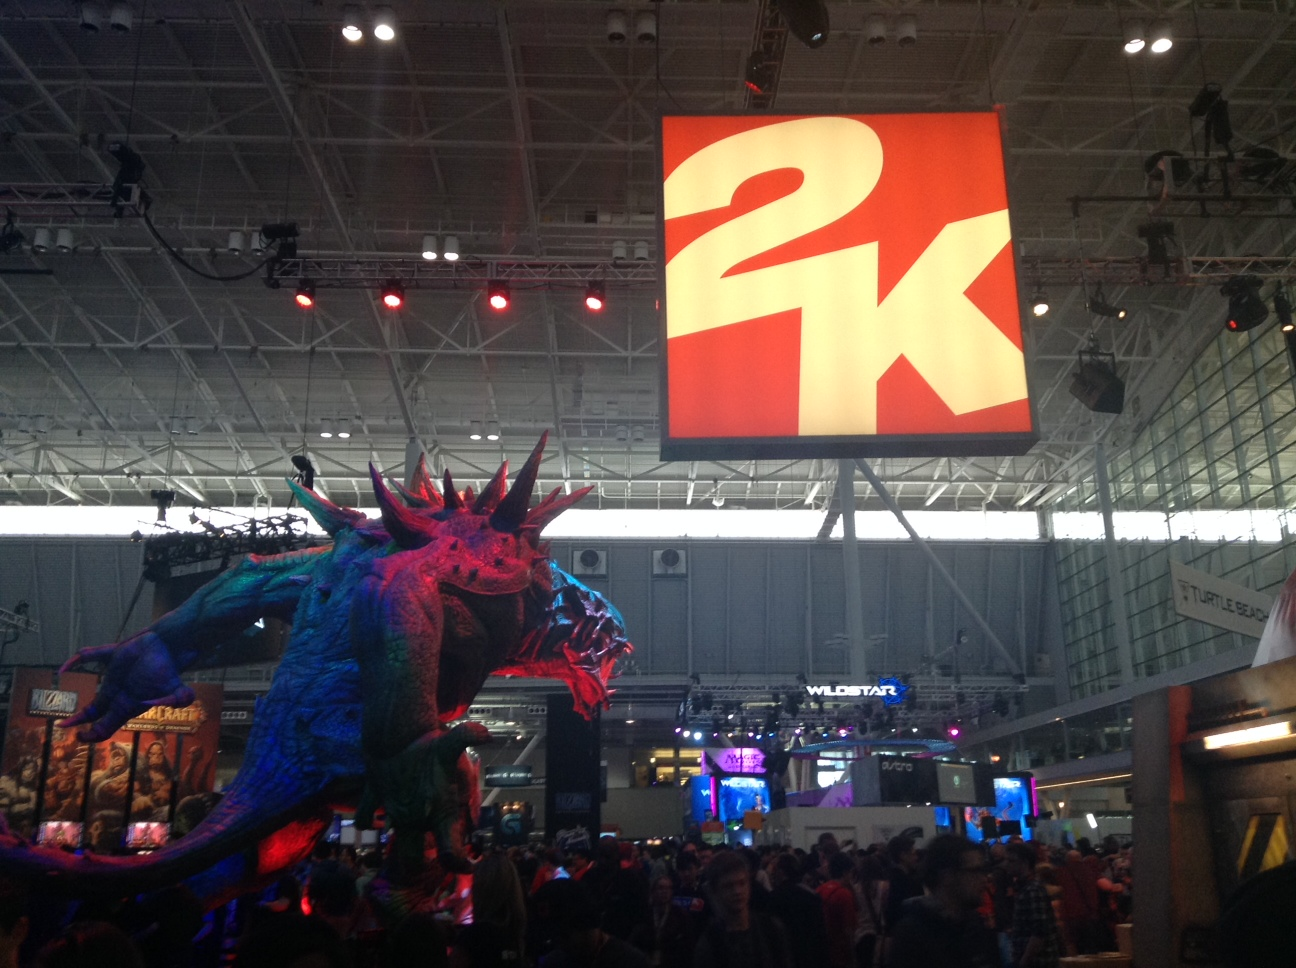 2K's booth area. Photo courtesy of Andrew Evans.